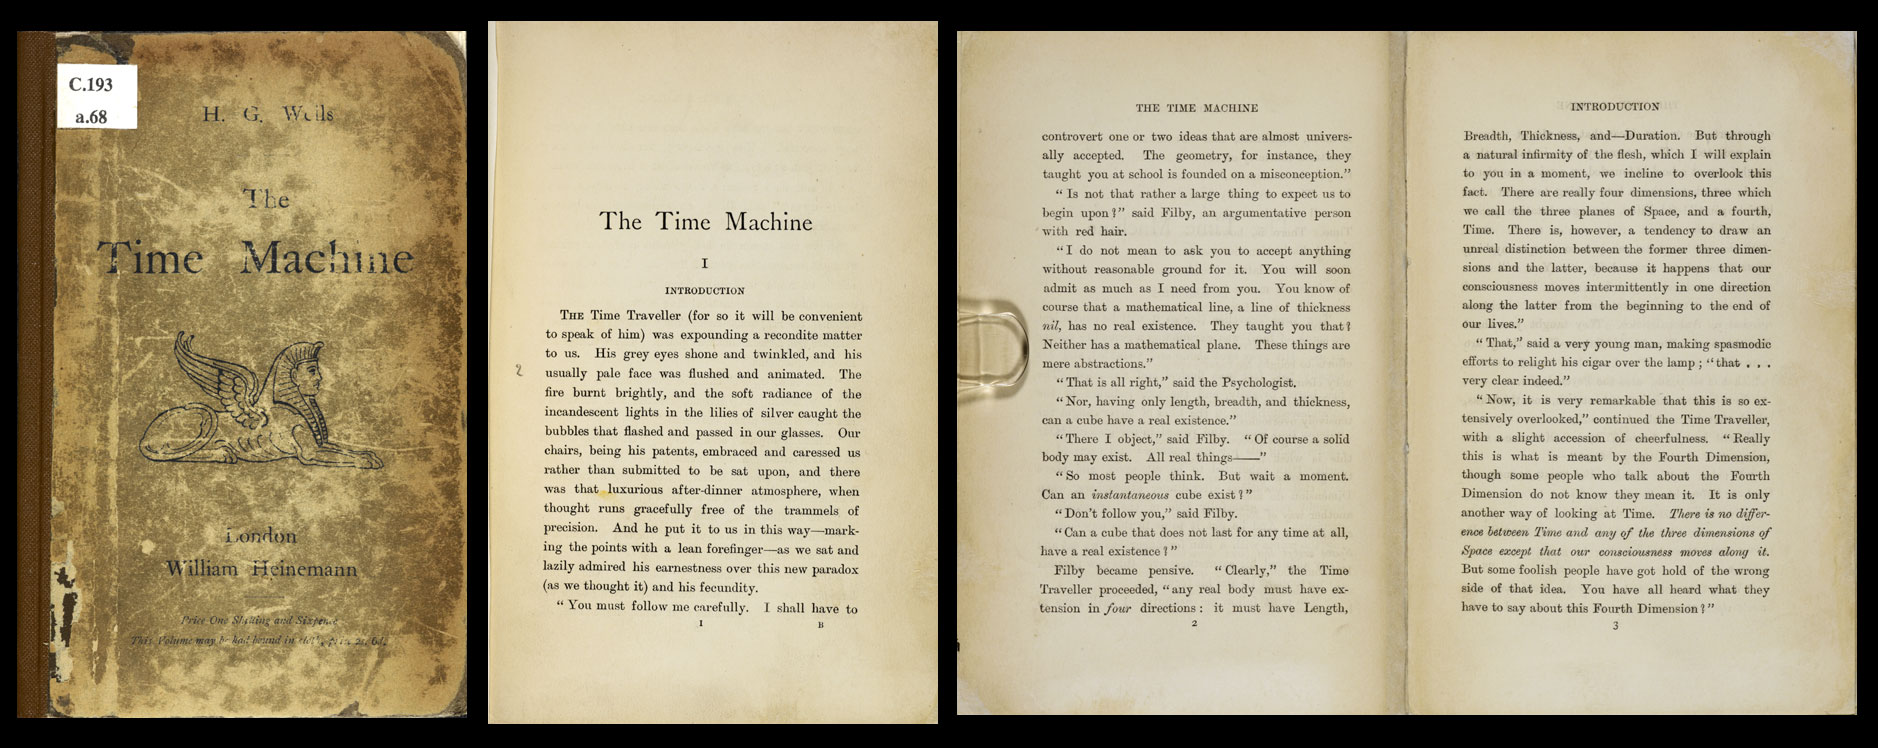 H G Wells, The Time Machine